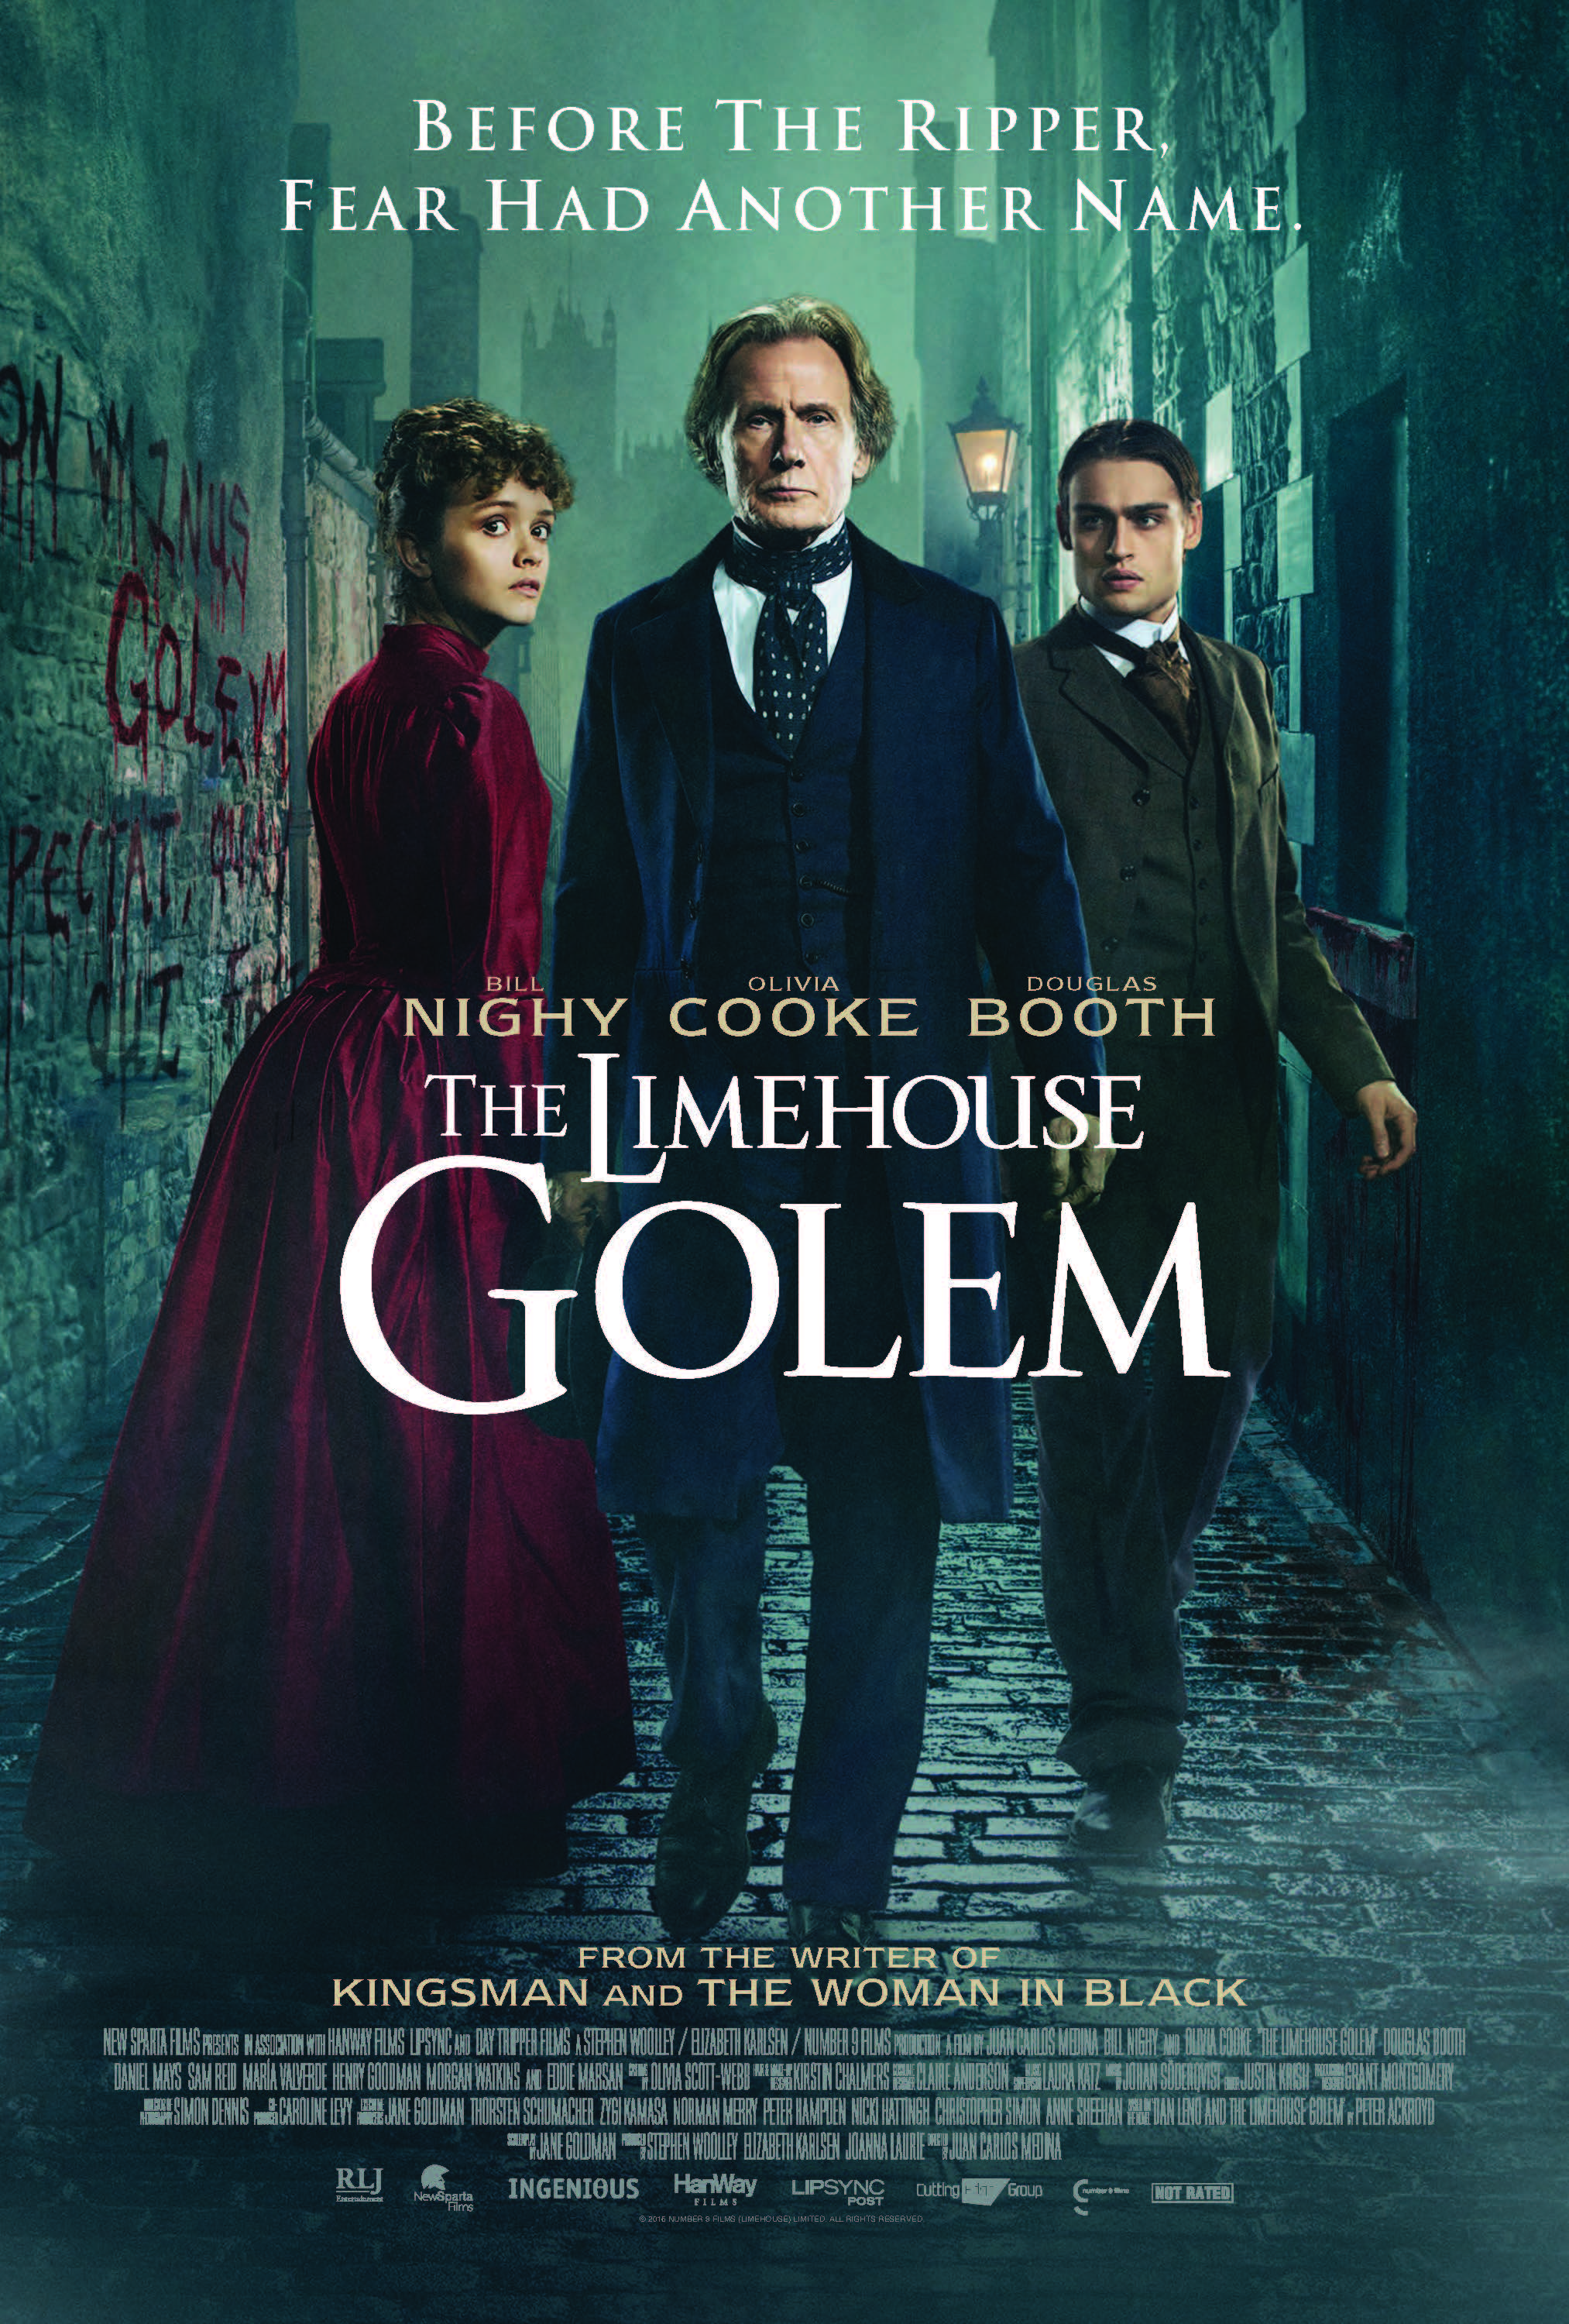 Limehouse Golem_1-sheetA_LR.jpg